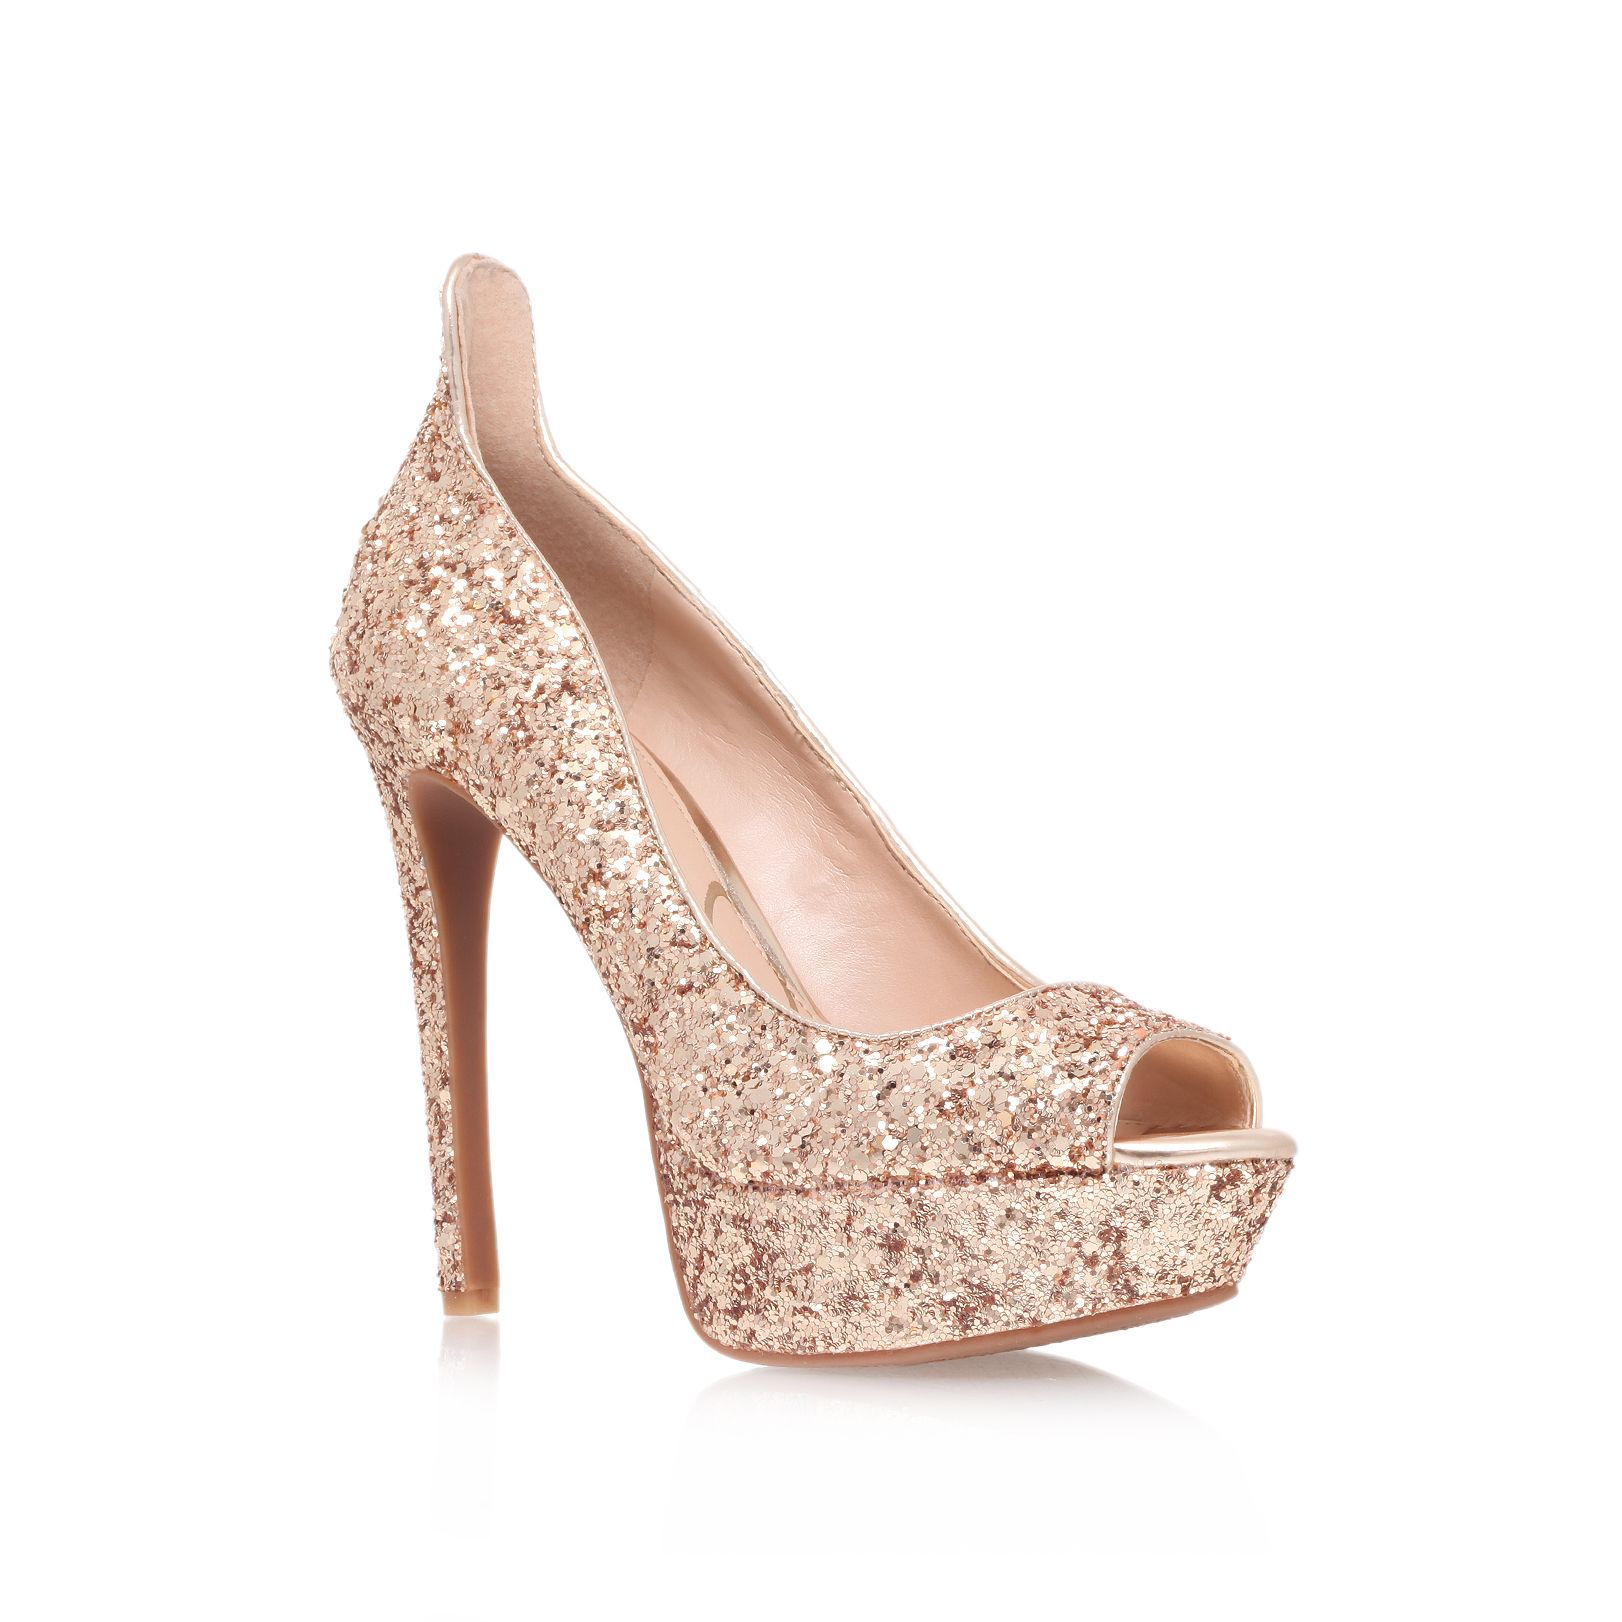 Denicia2 high heel court shoes